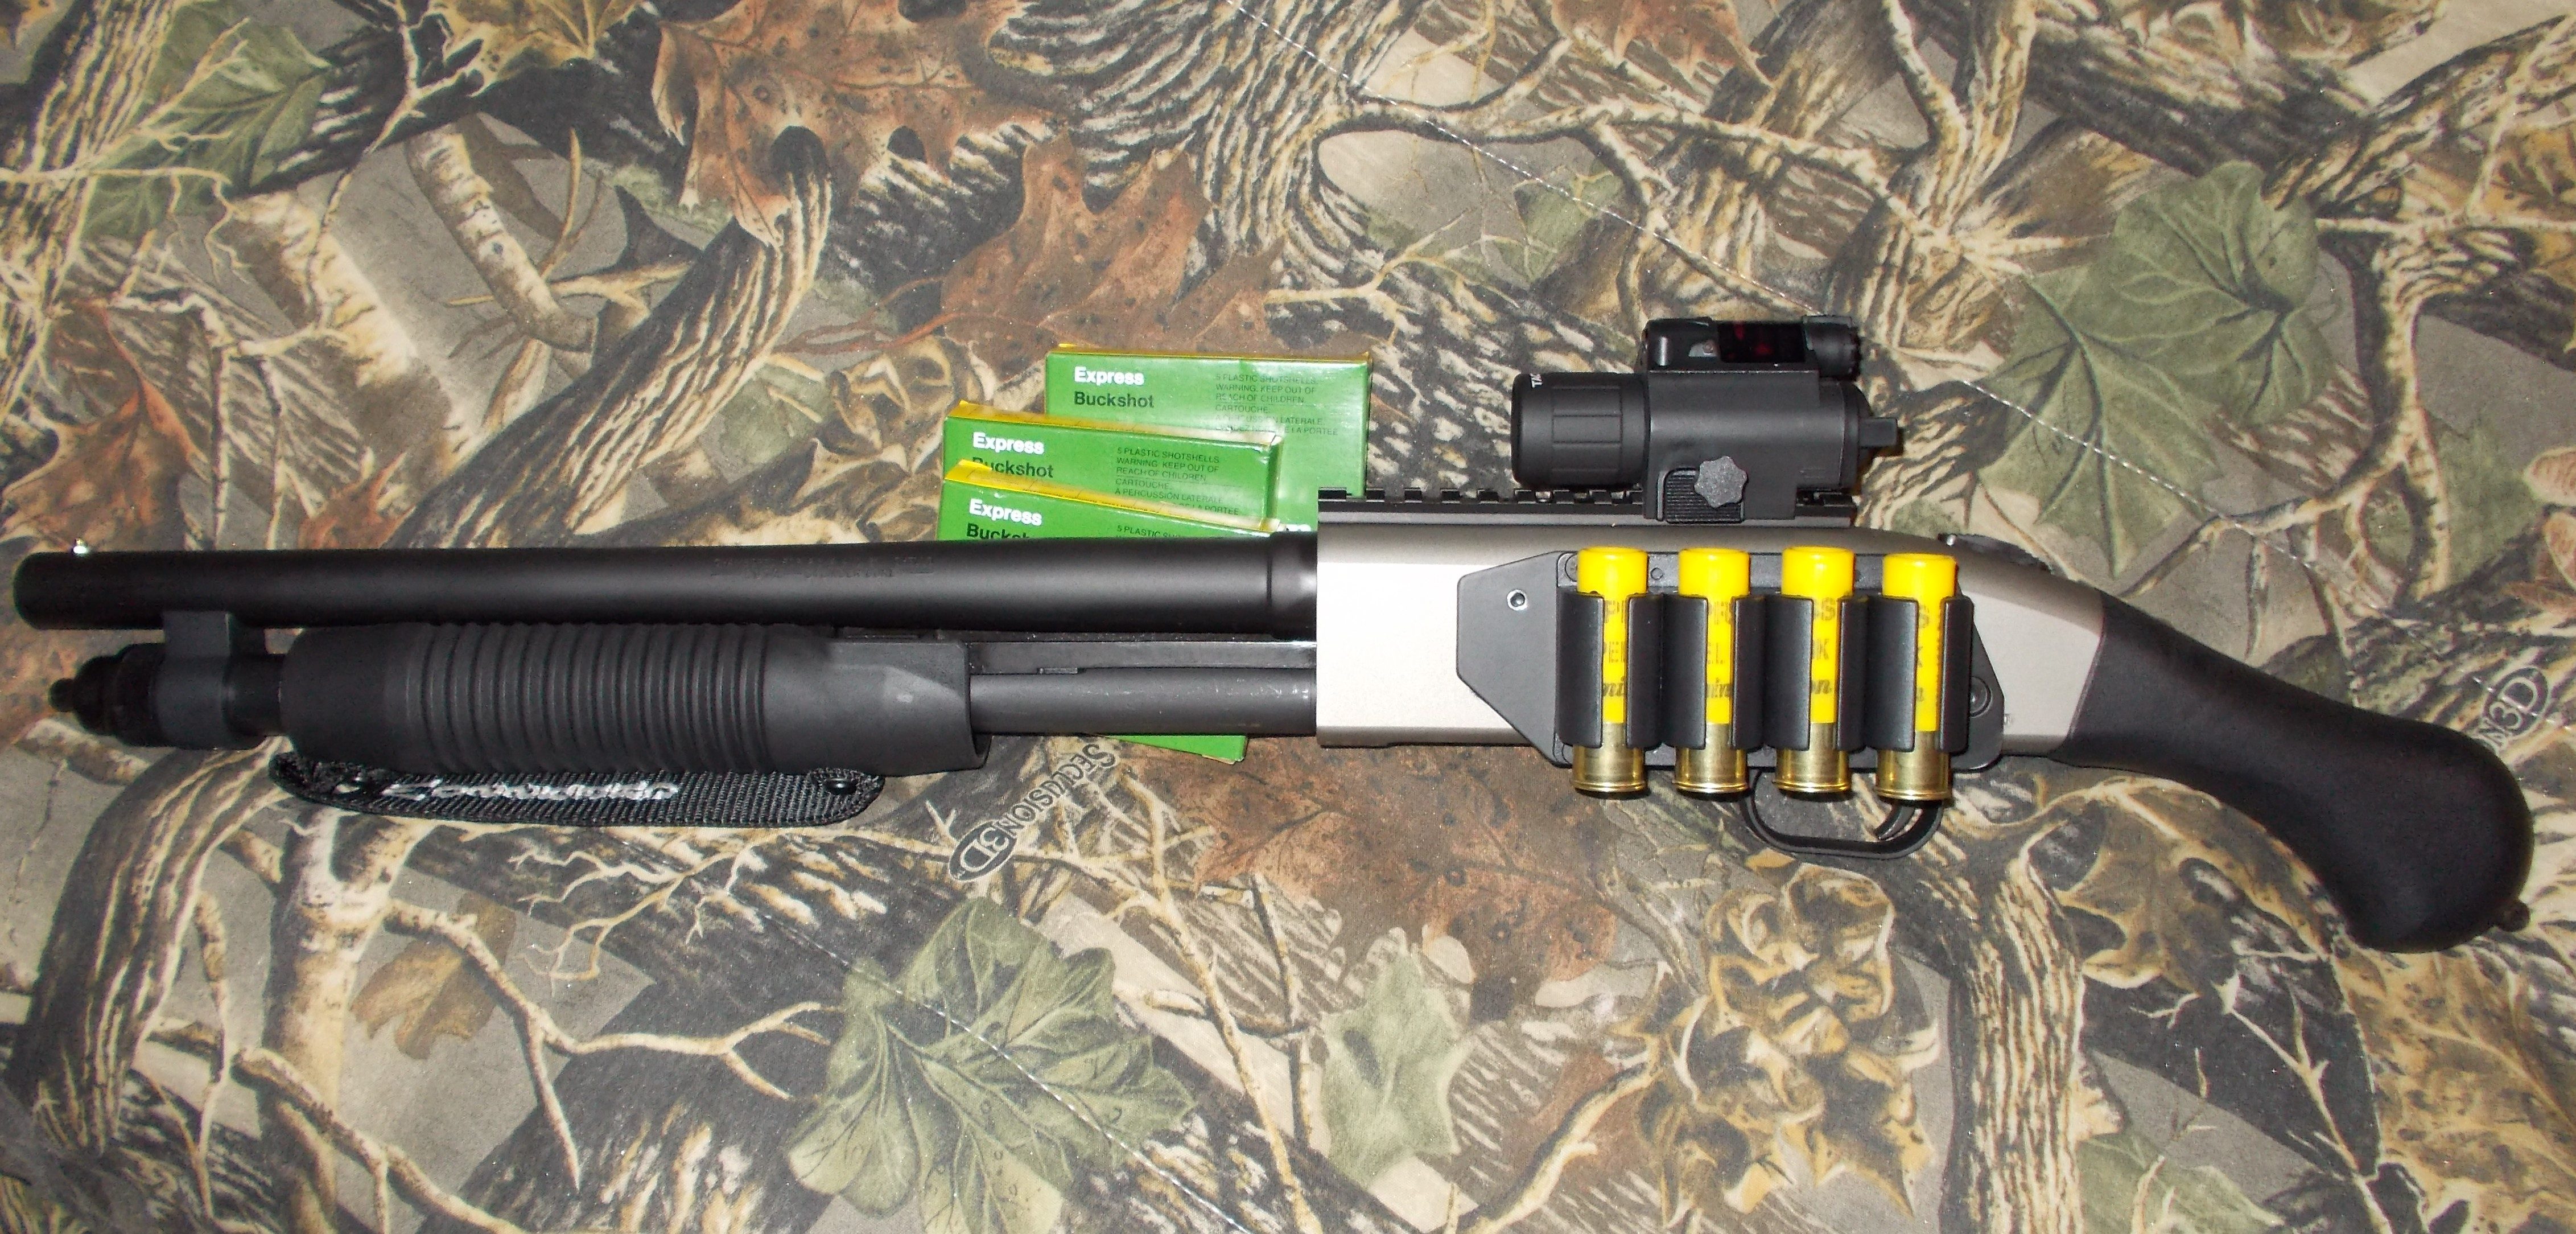 What options do you have, if any, on your home defense shotgun?-shockwave1.jpg